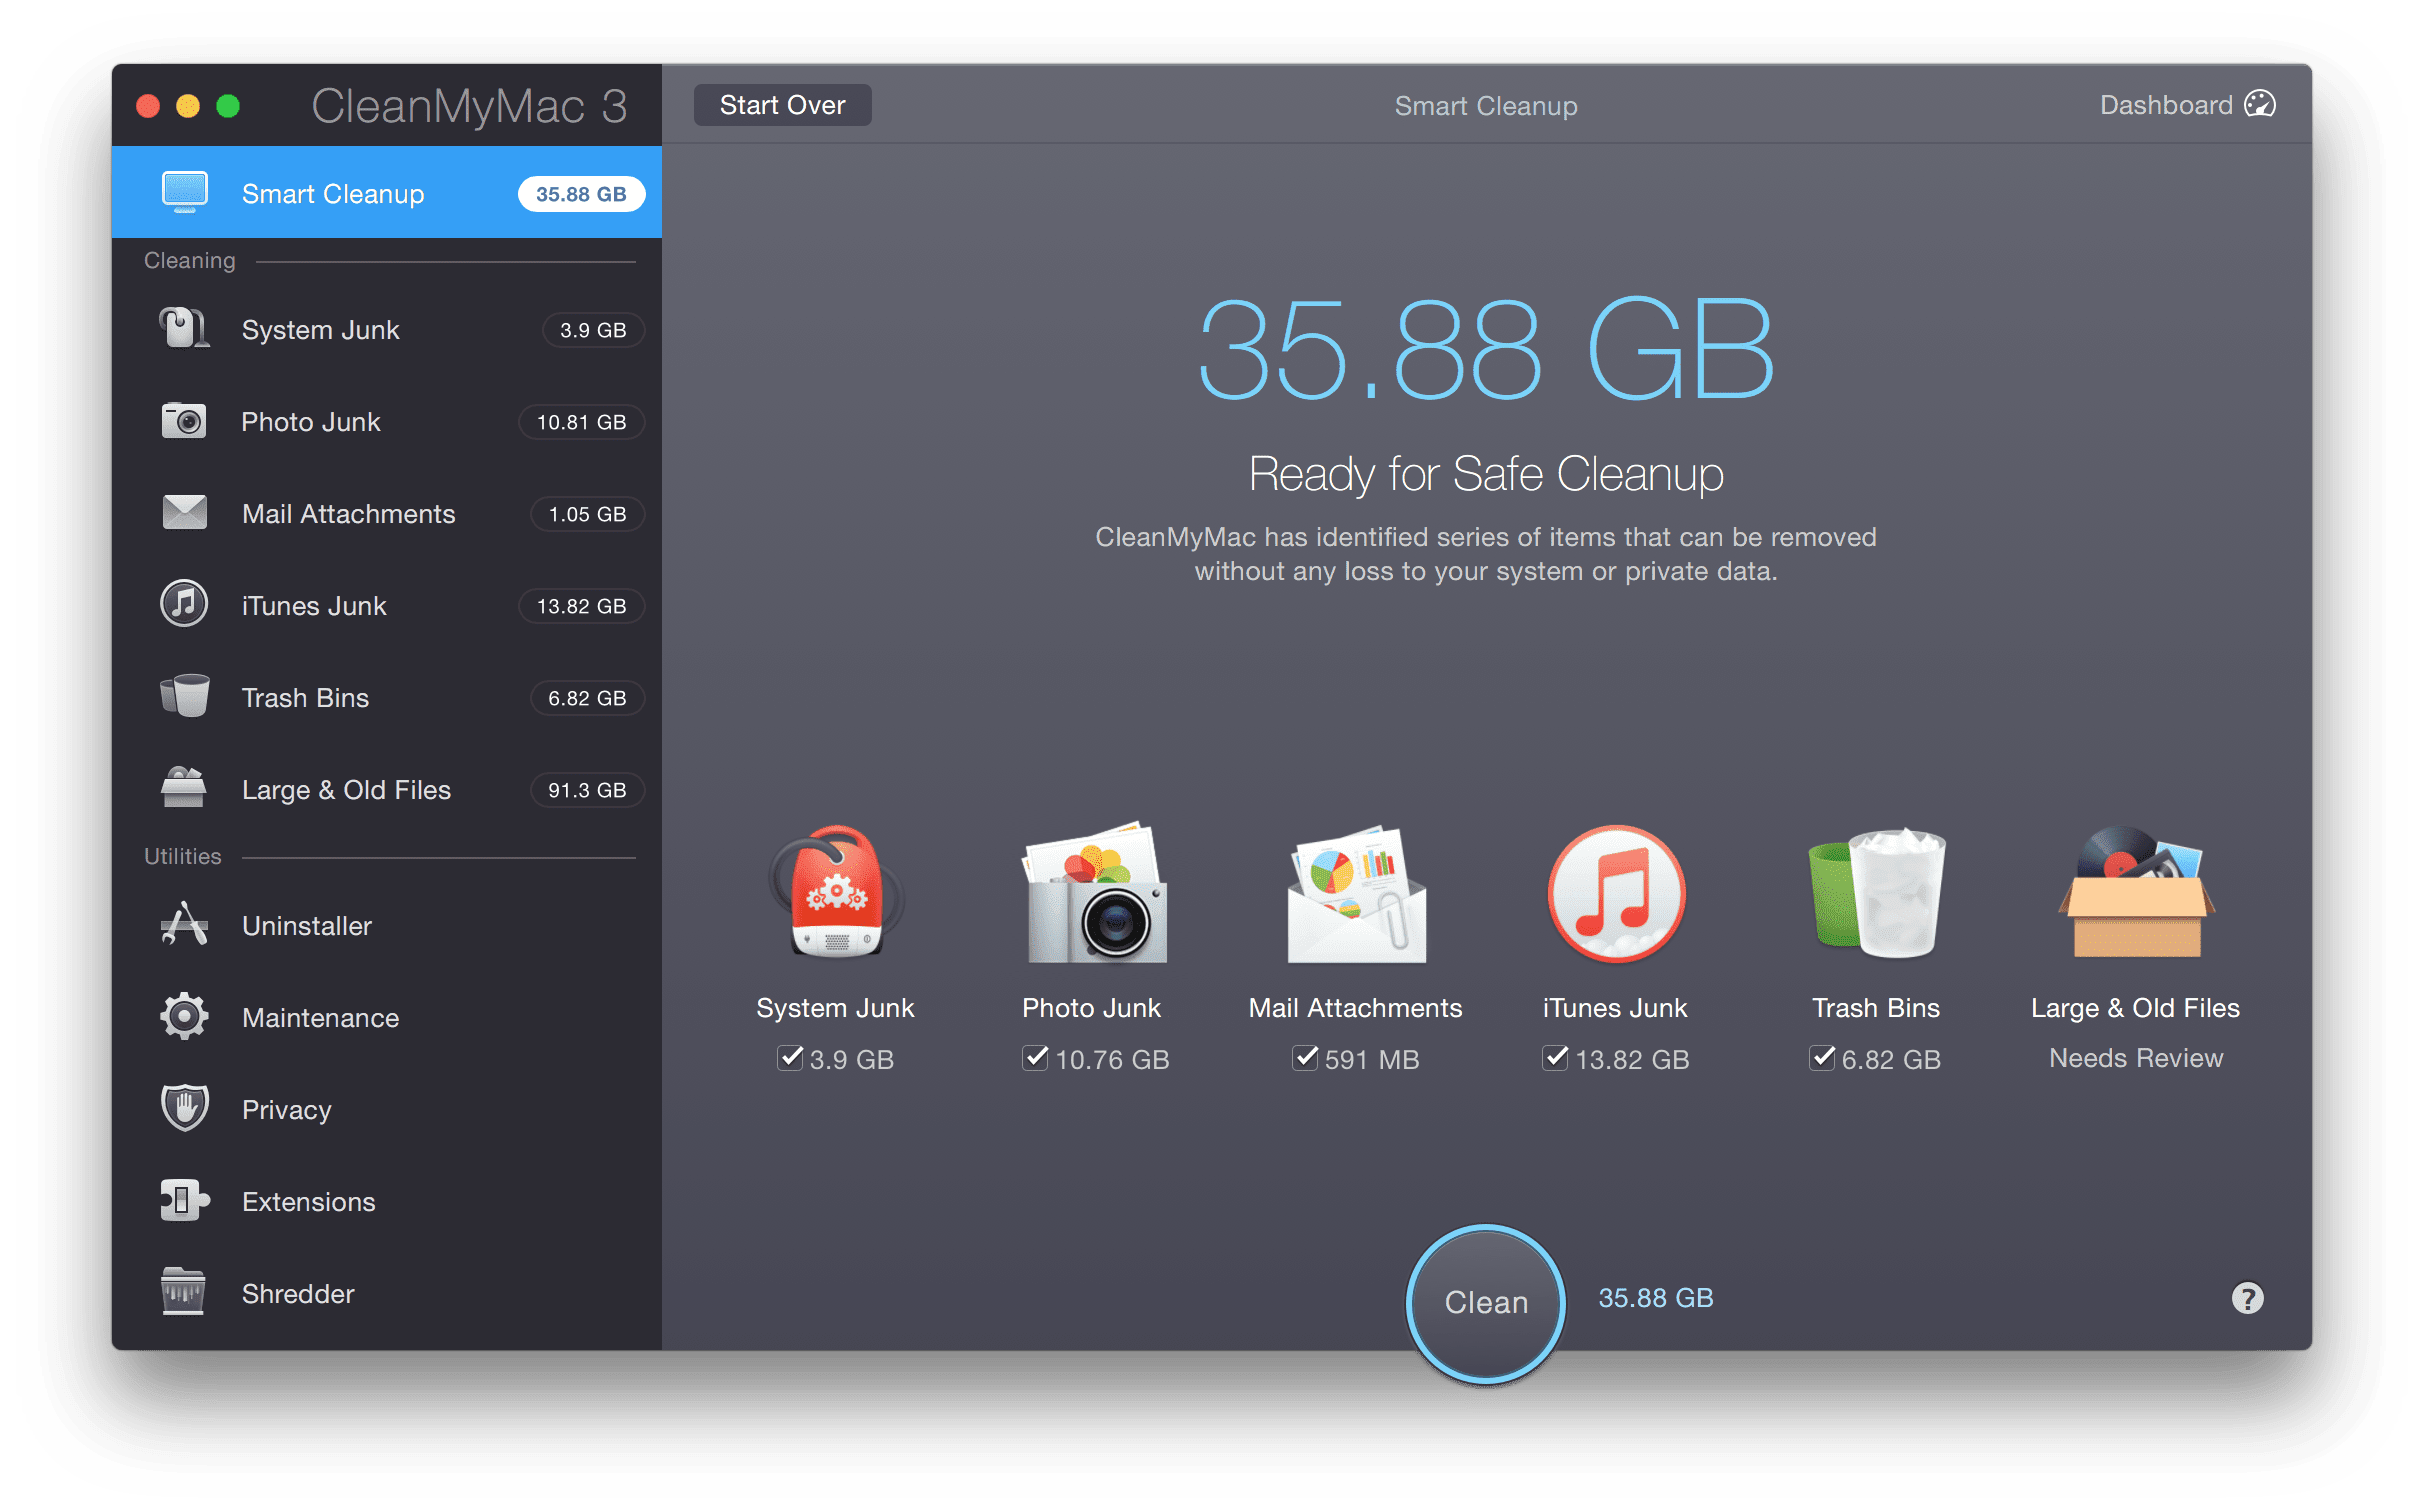 cleanmymac 3 free licence